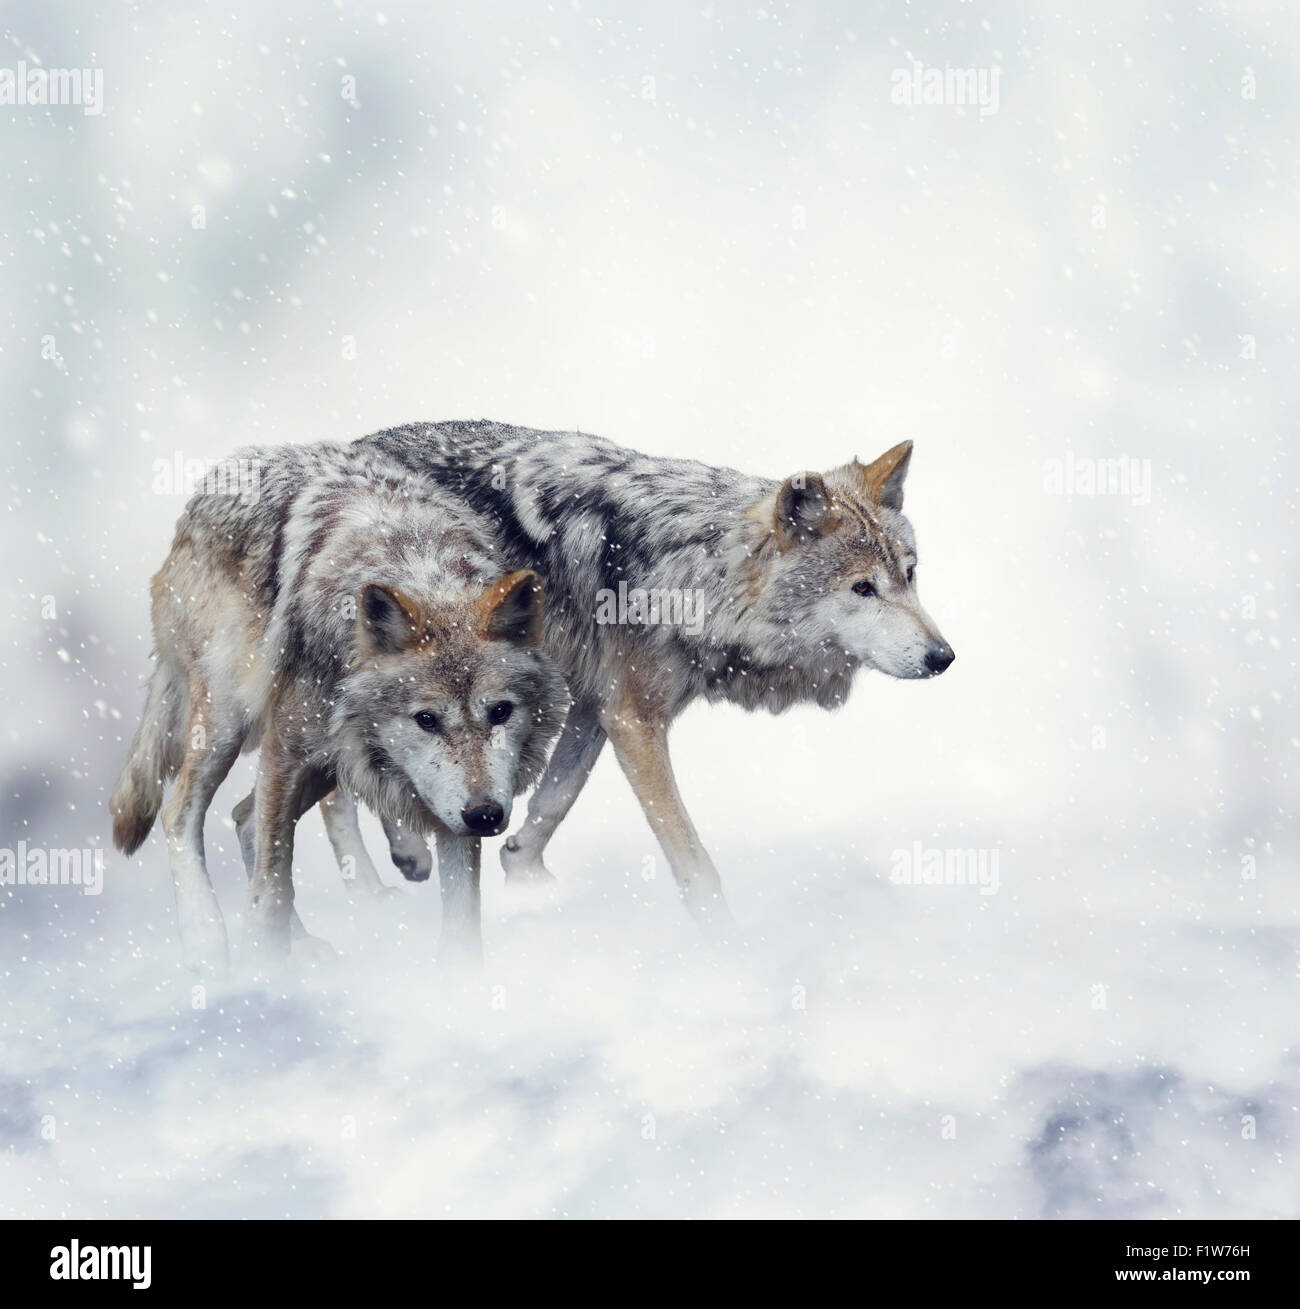 Two Wolves Walking in the Snow - Stock Image